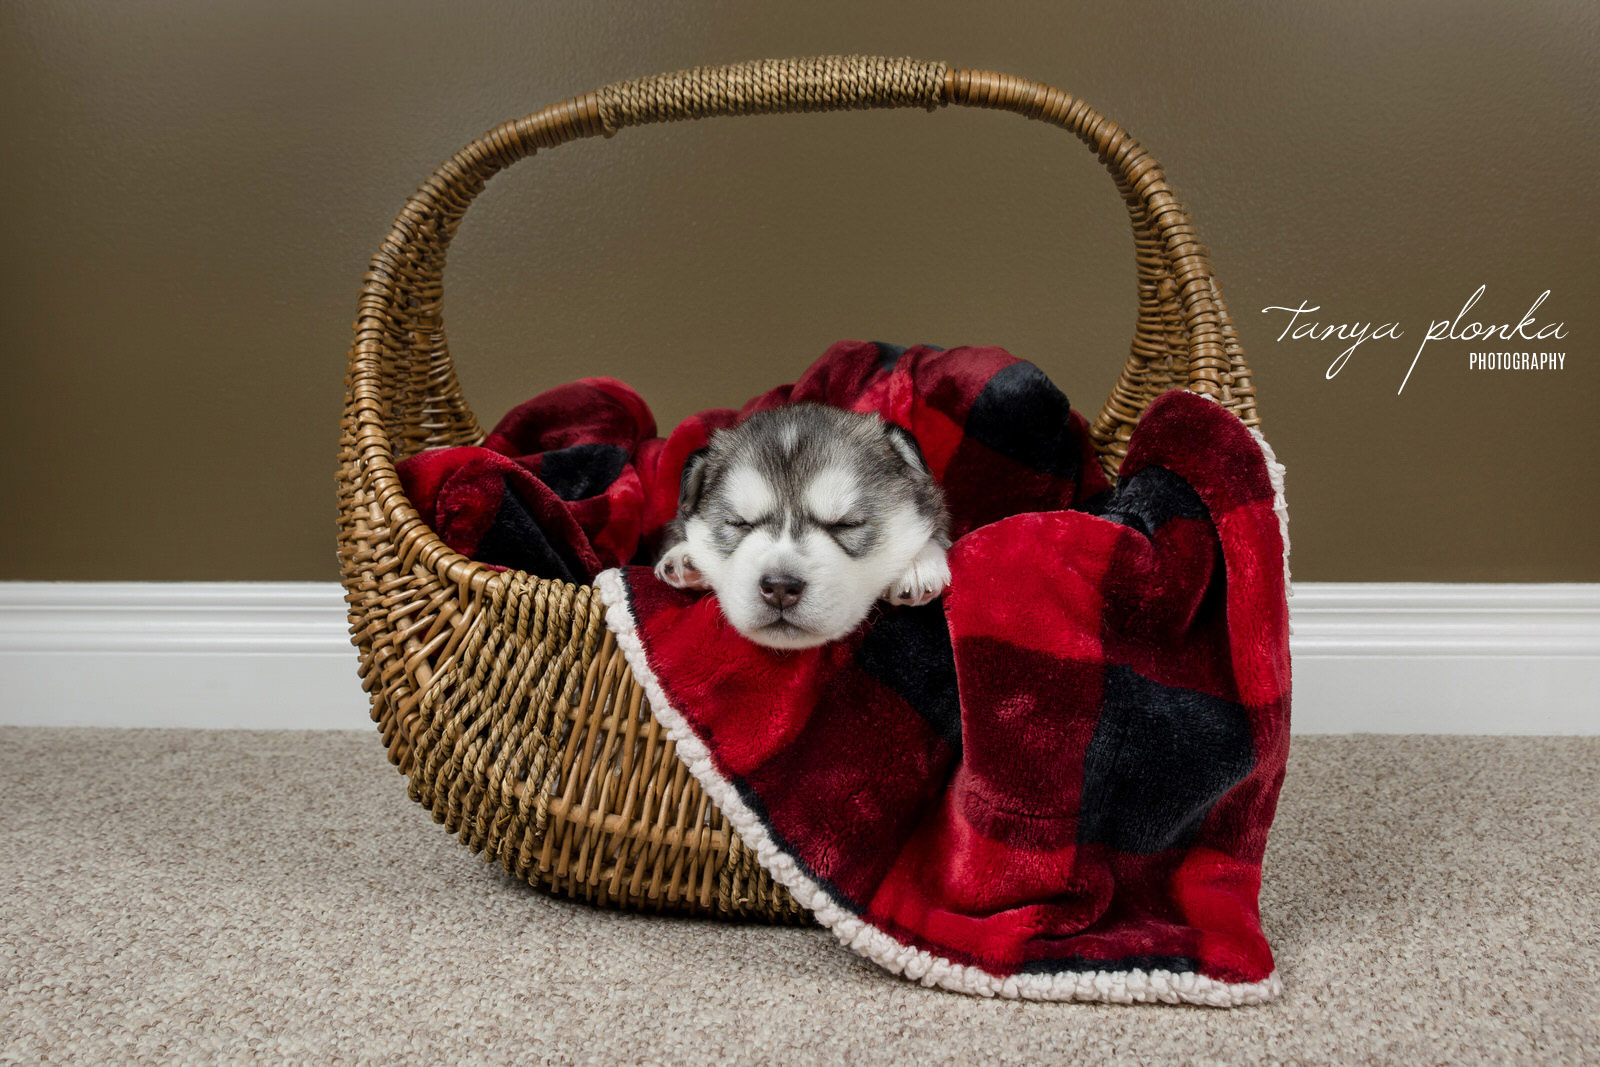 Husky Puppy Sleeping in Basket with Red Blanket